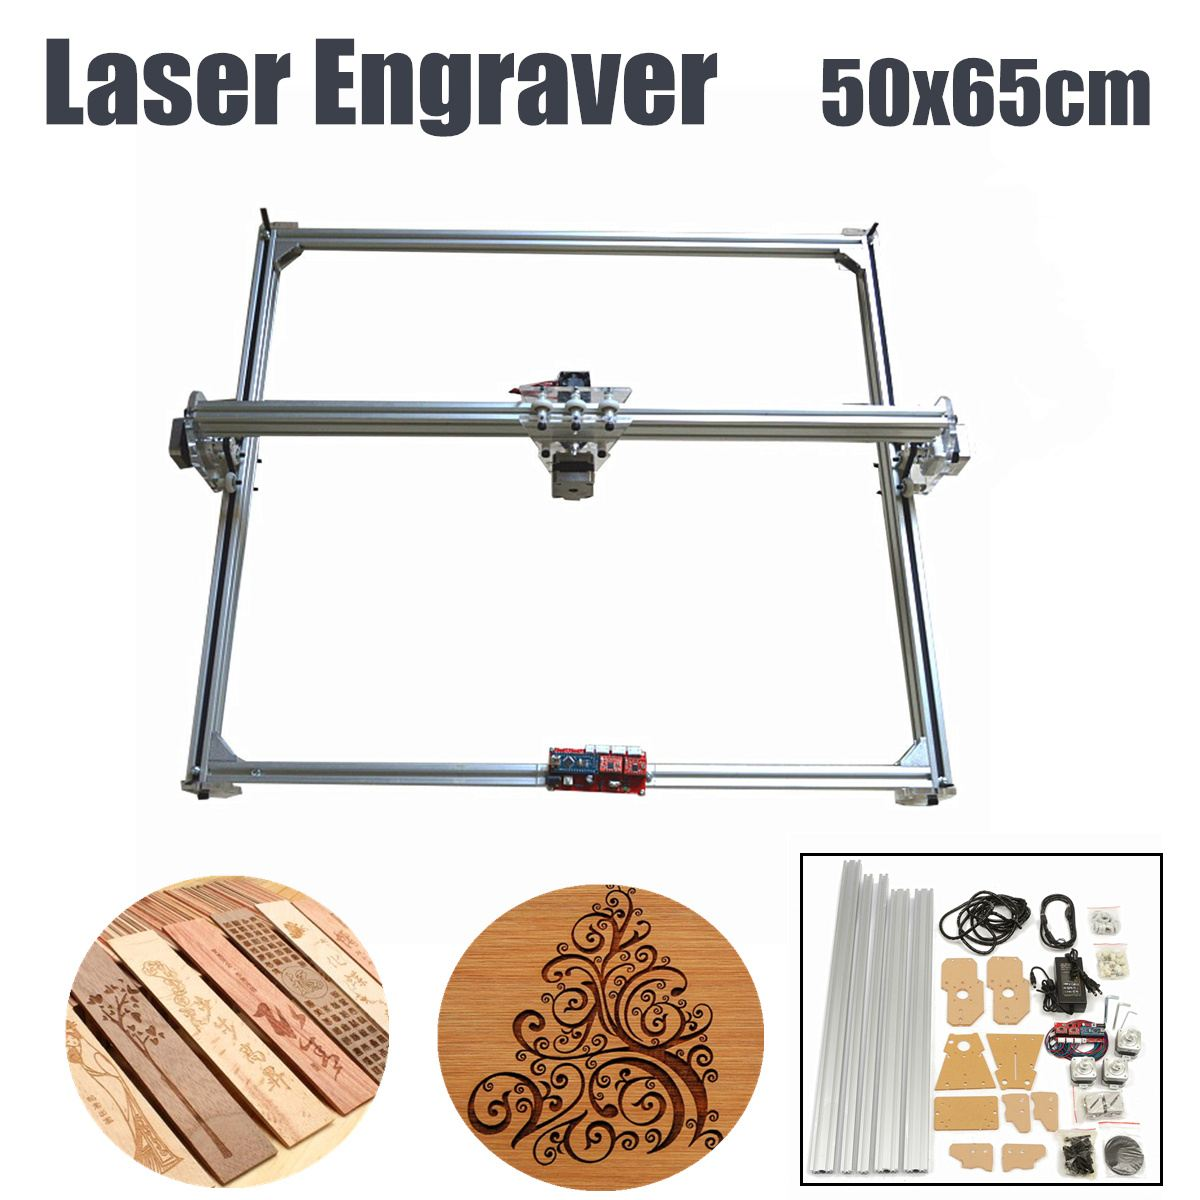 50*65cm 100mw-10W DIY Desktop Mini Laser Cutting/Engraving Engraver Machine DC 12V Wood Cutter/Printer/Power Adjustable